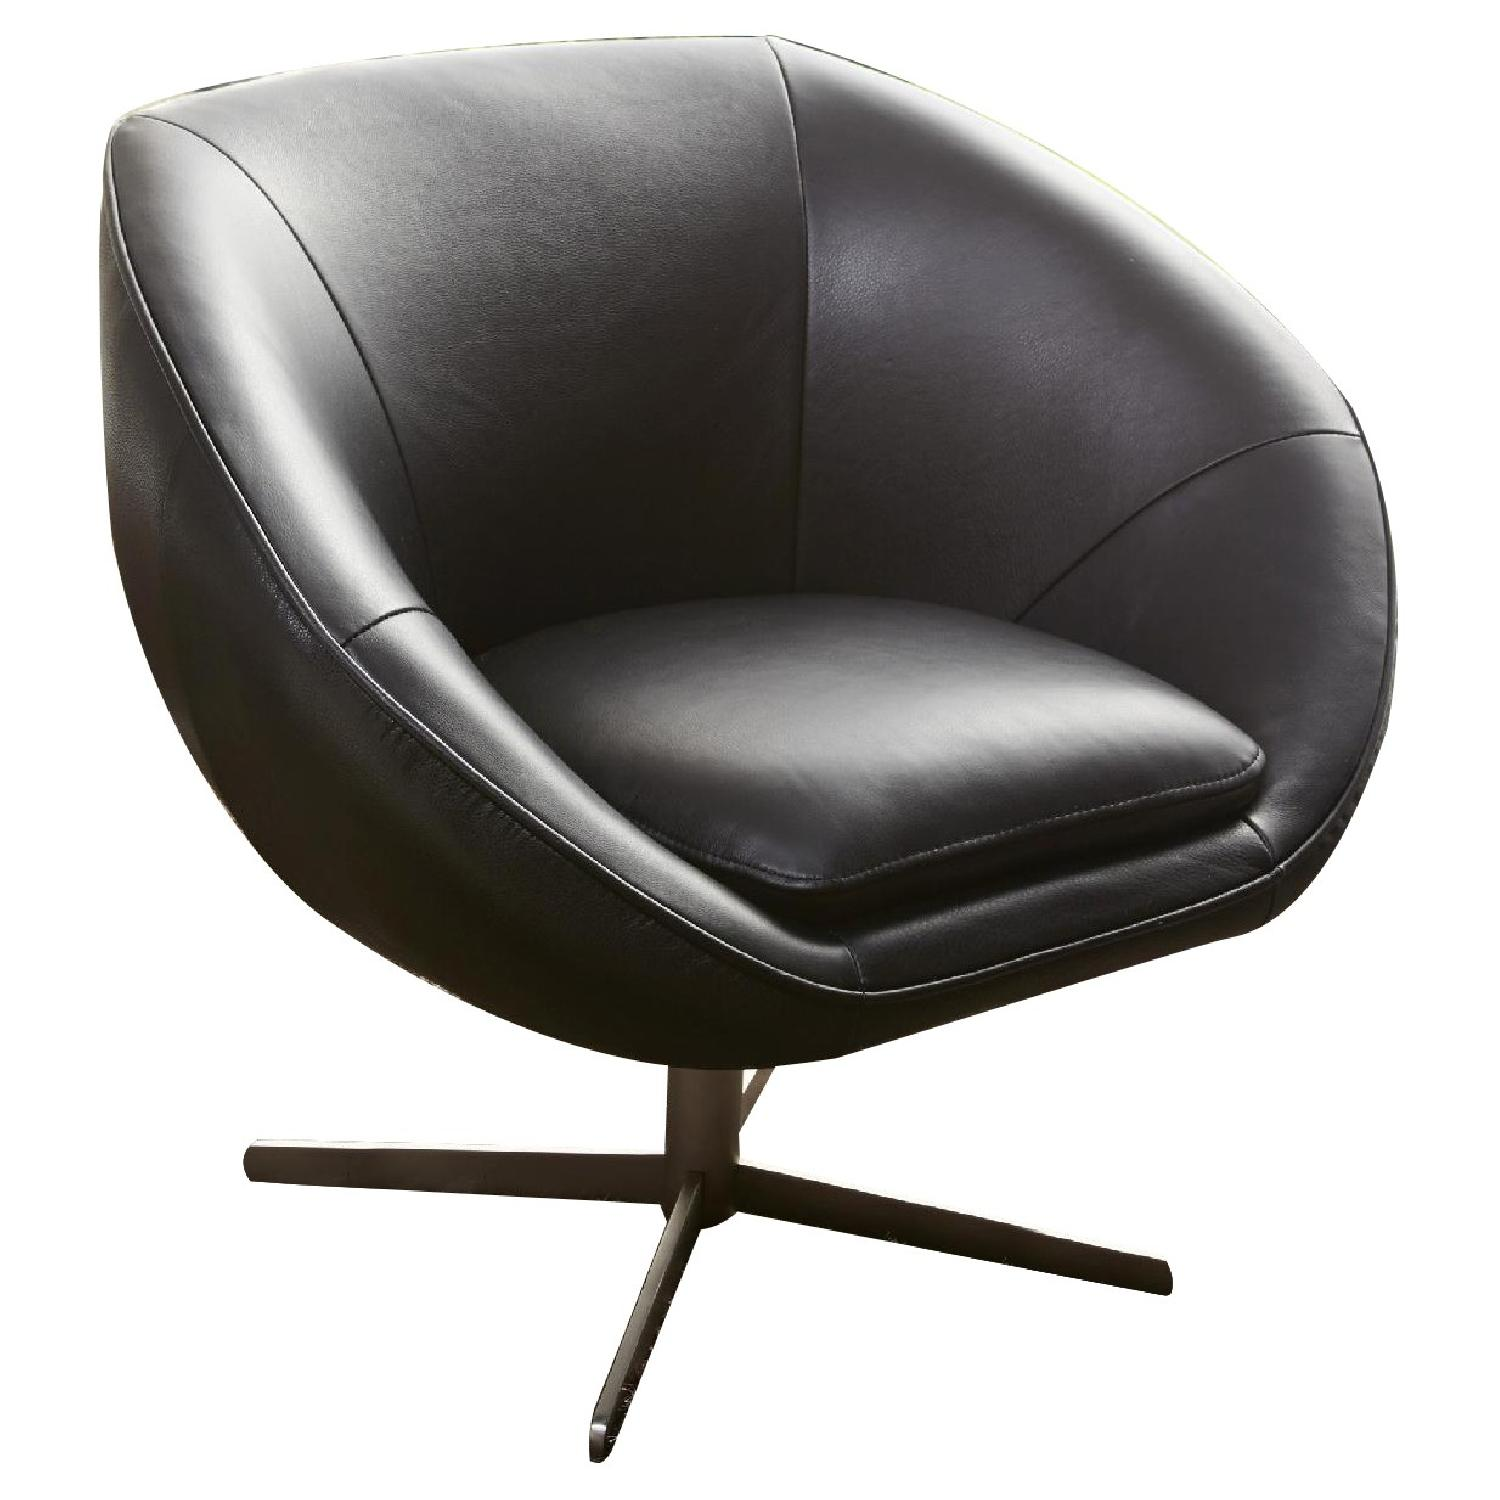 Modern Swivel Accent Chair in Black Premium Leather w/ Matching Faux Leather & Chrome Base - image-0